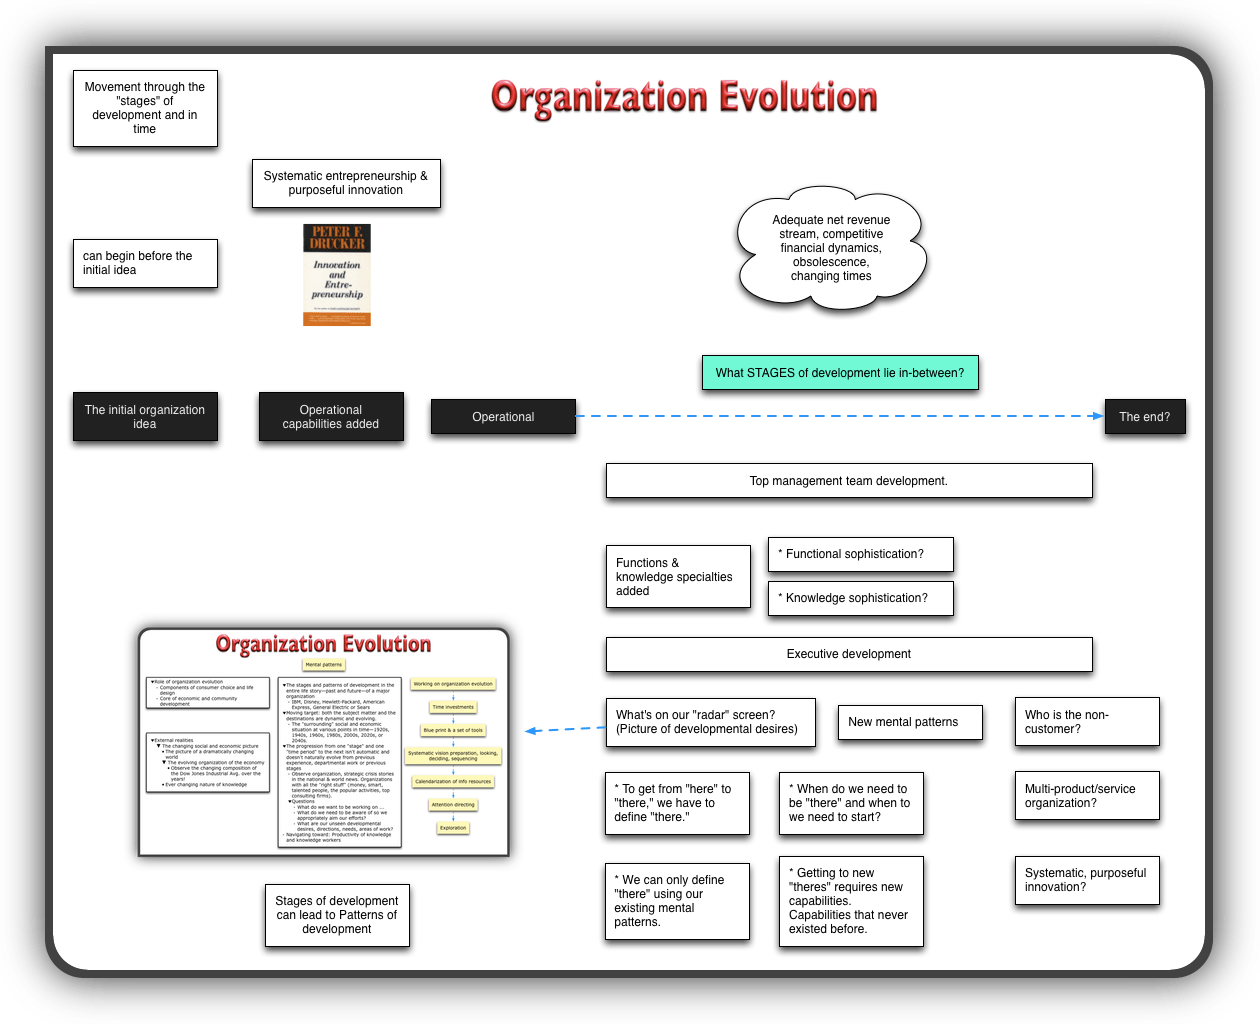 Linear view of organization evolution